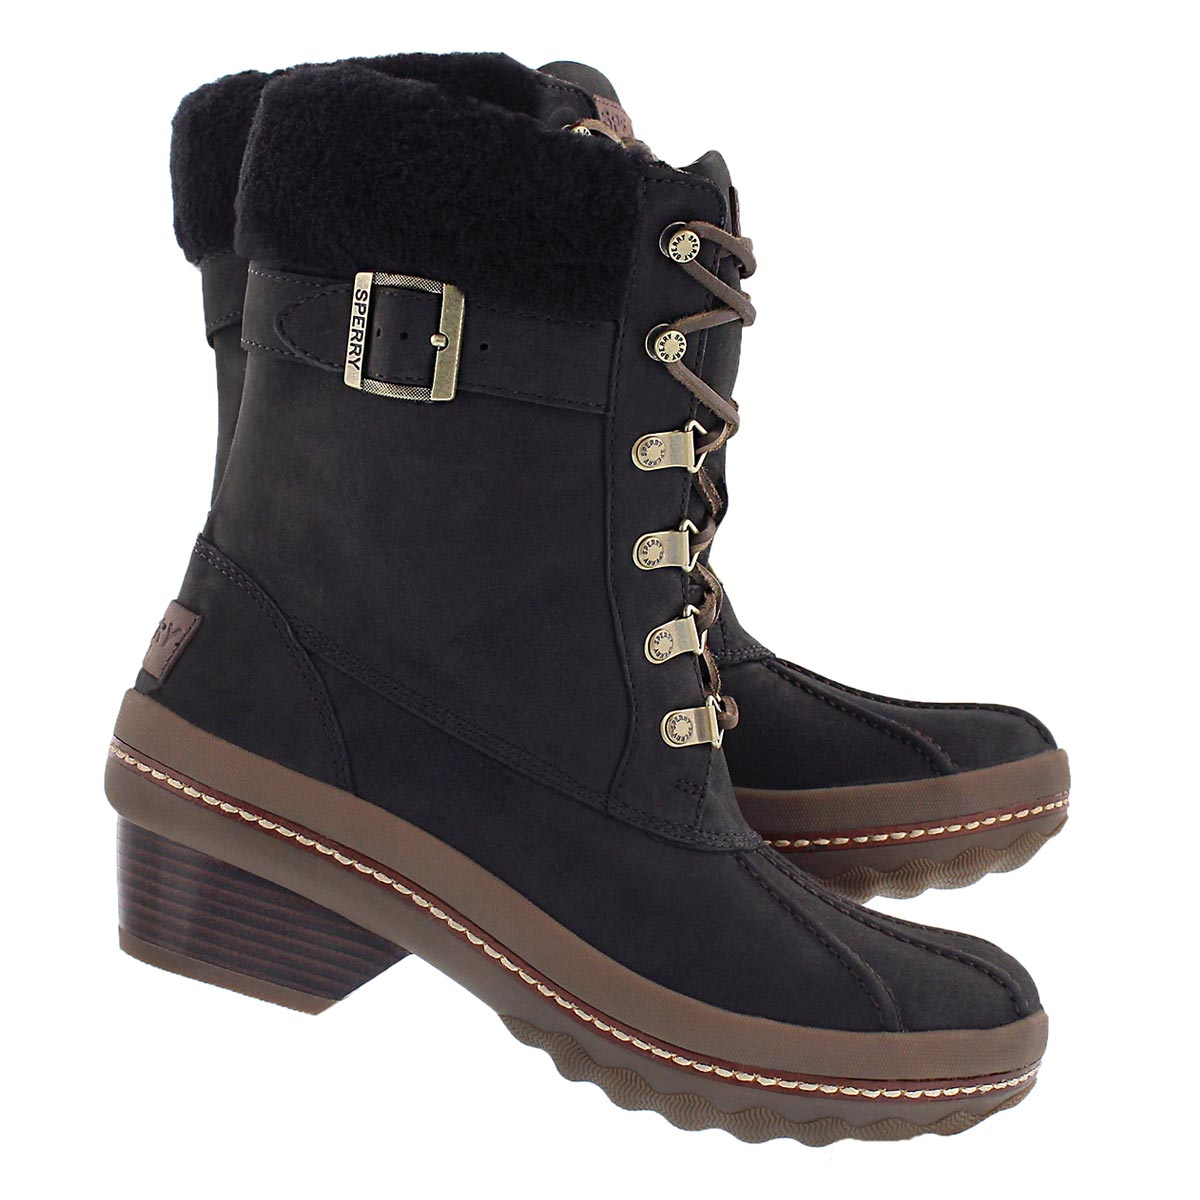 Lds Gold Cup Ava blk wtrprf ankle boot